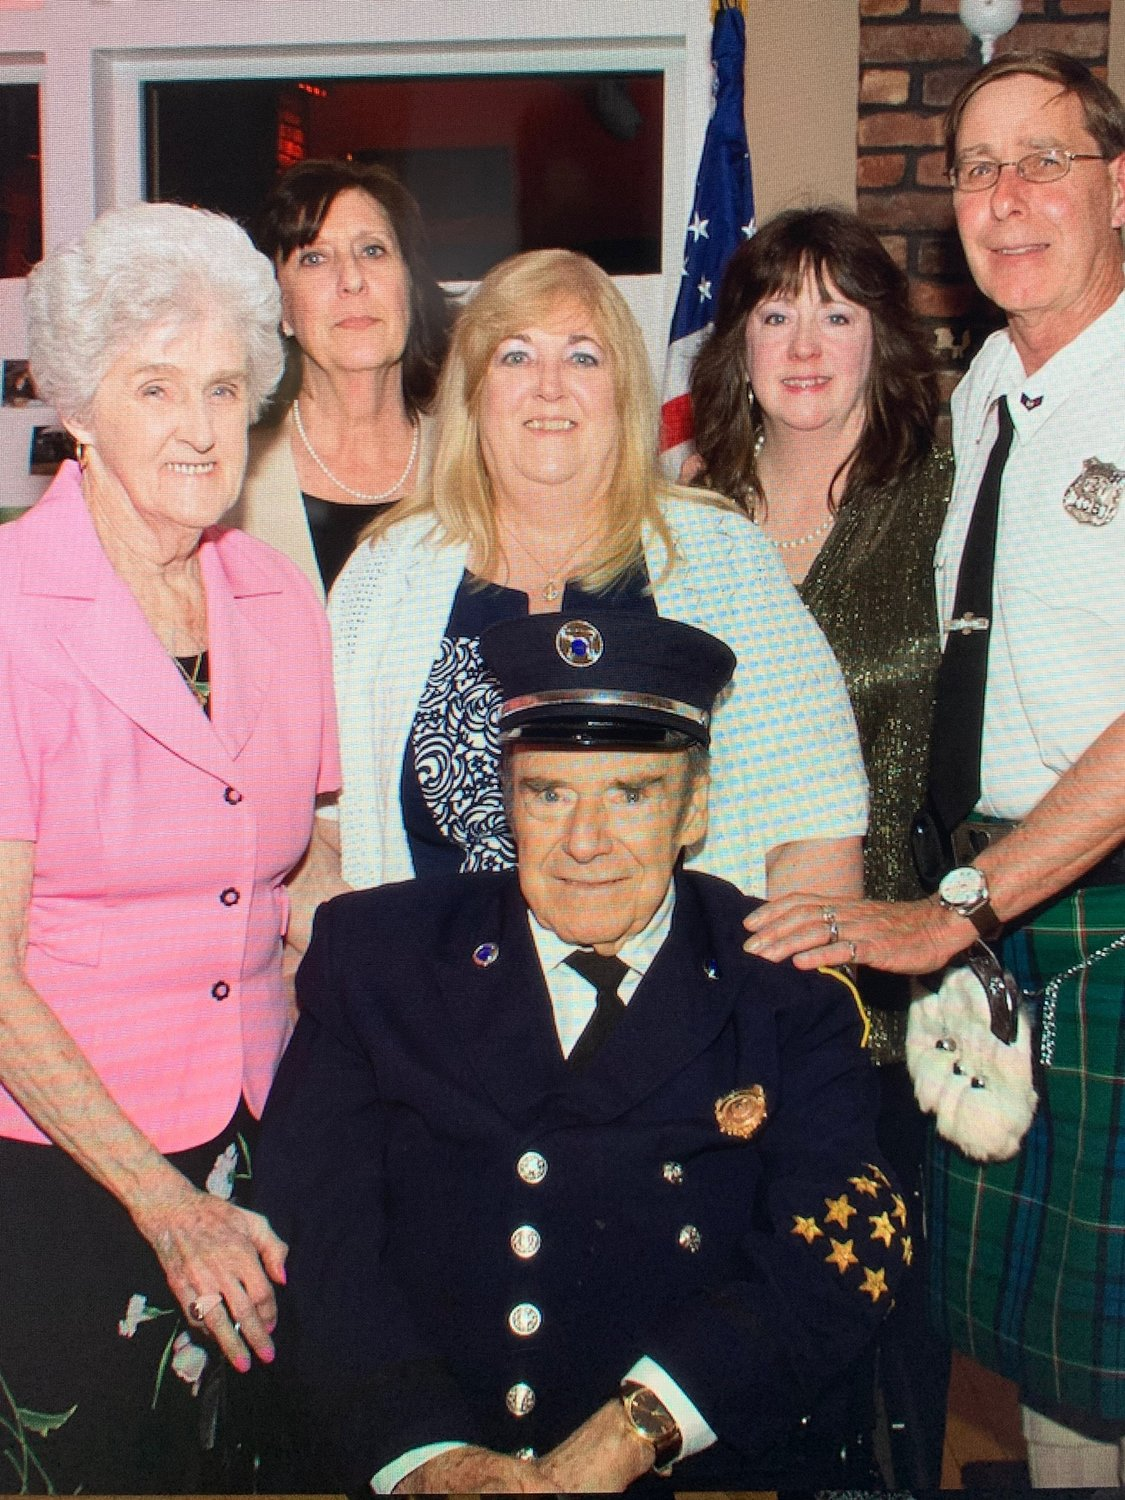 Abrams's family — from left, Agnes, Theresa, Tina, Tami and Martin Jr. — joined him at the Merrick Fire Department's 2017 installation dinner, at which he received a plaque commemorating 50 years in the fire service.